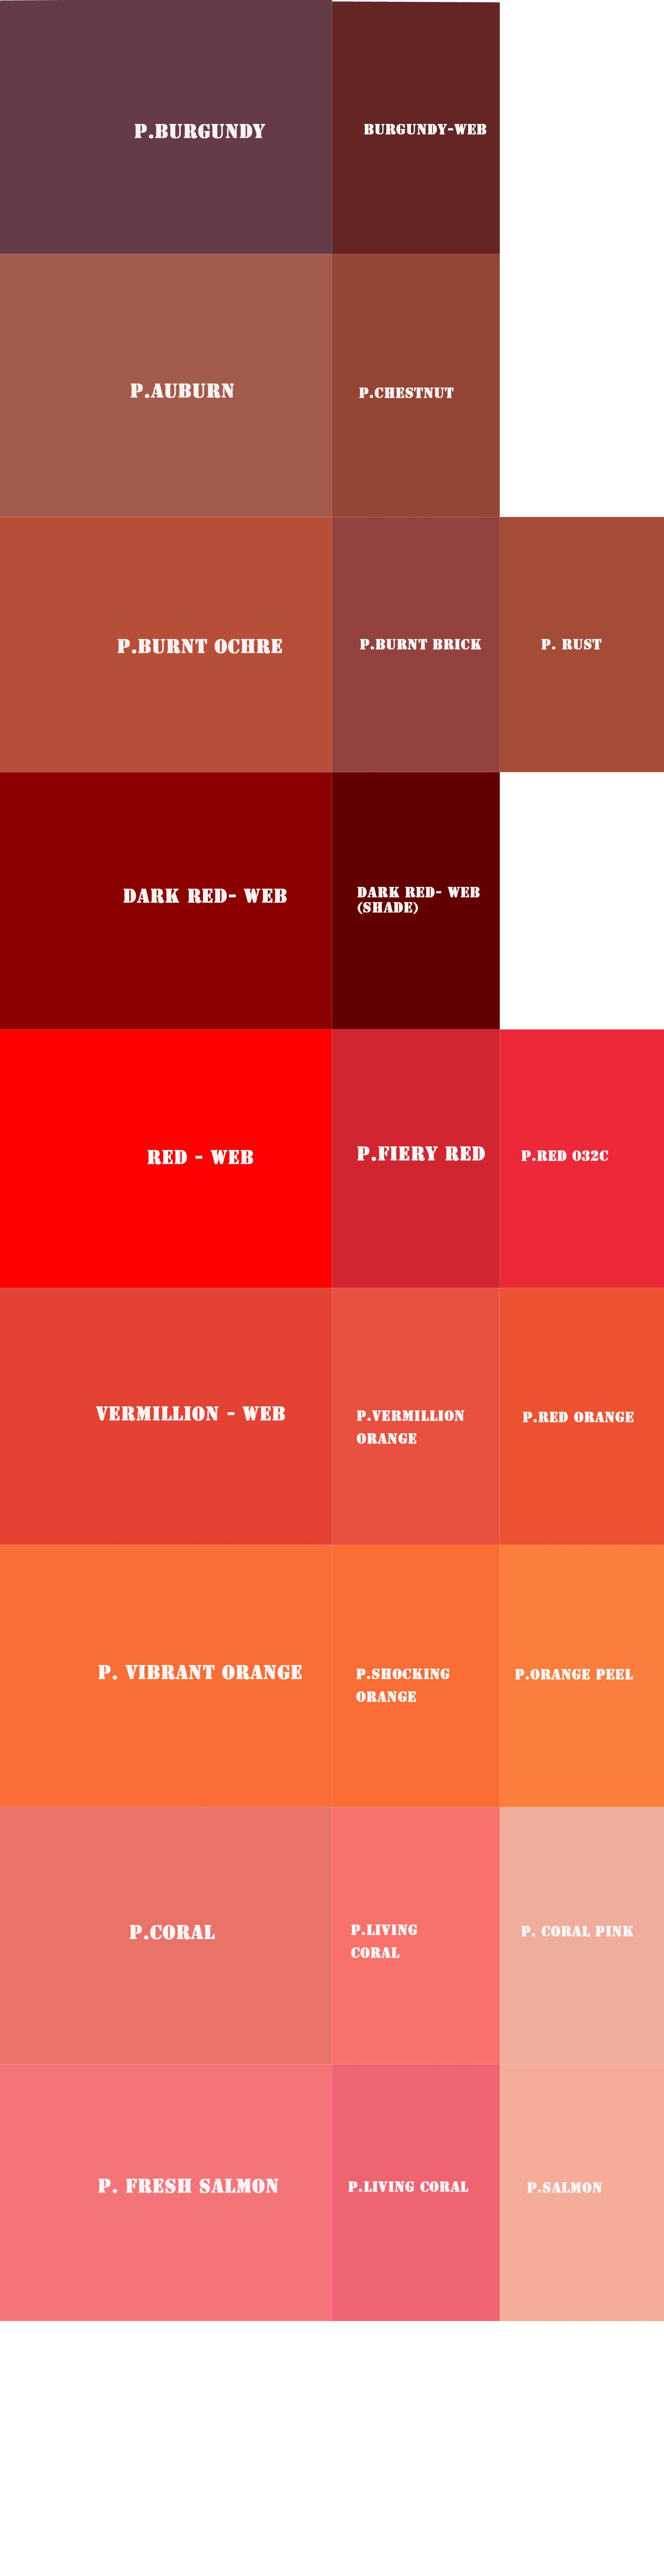 My RED Pantone and web color references